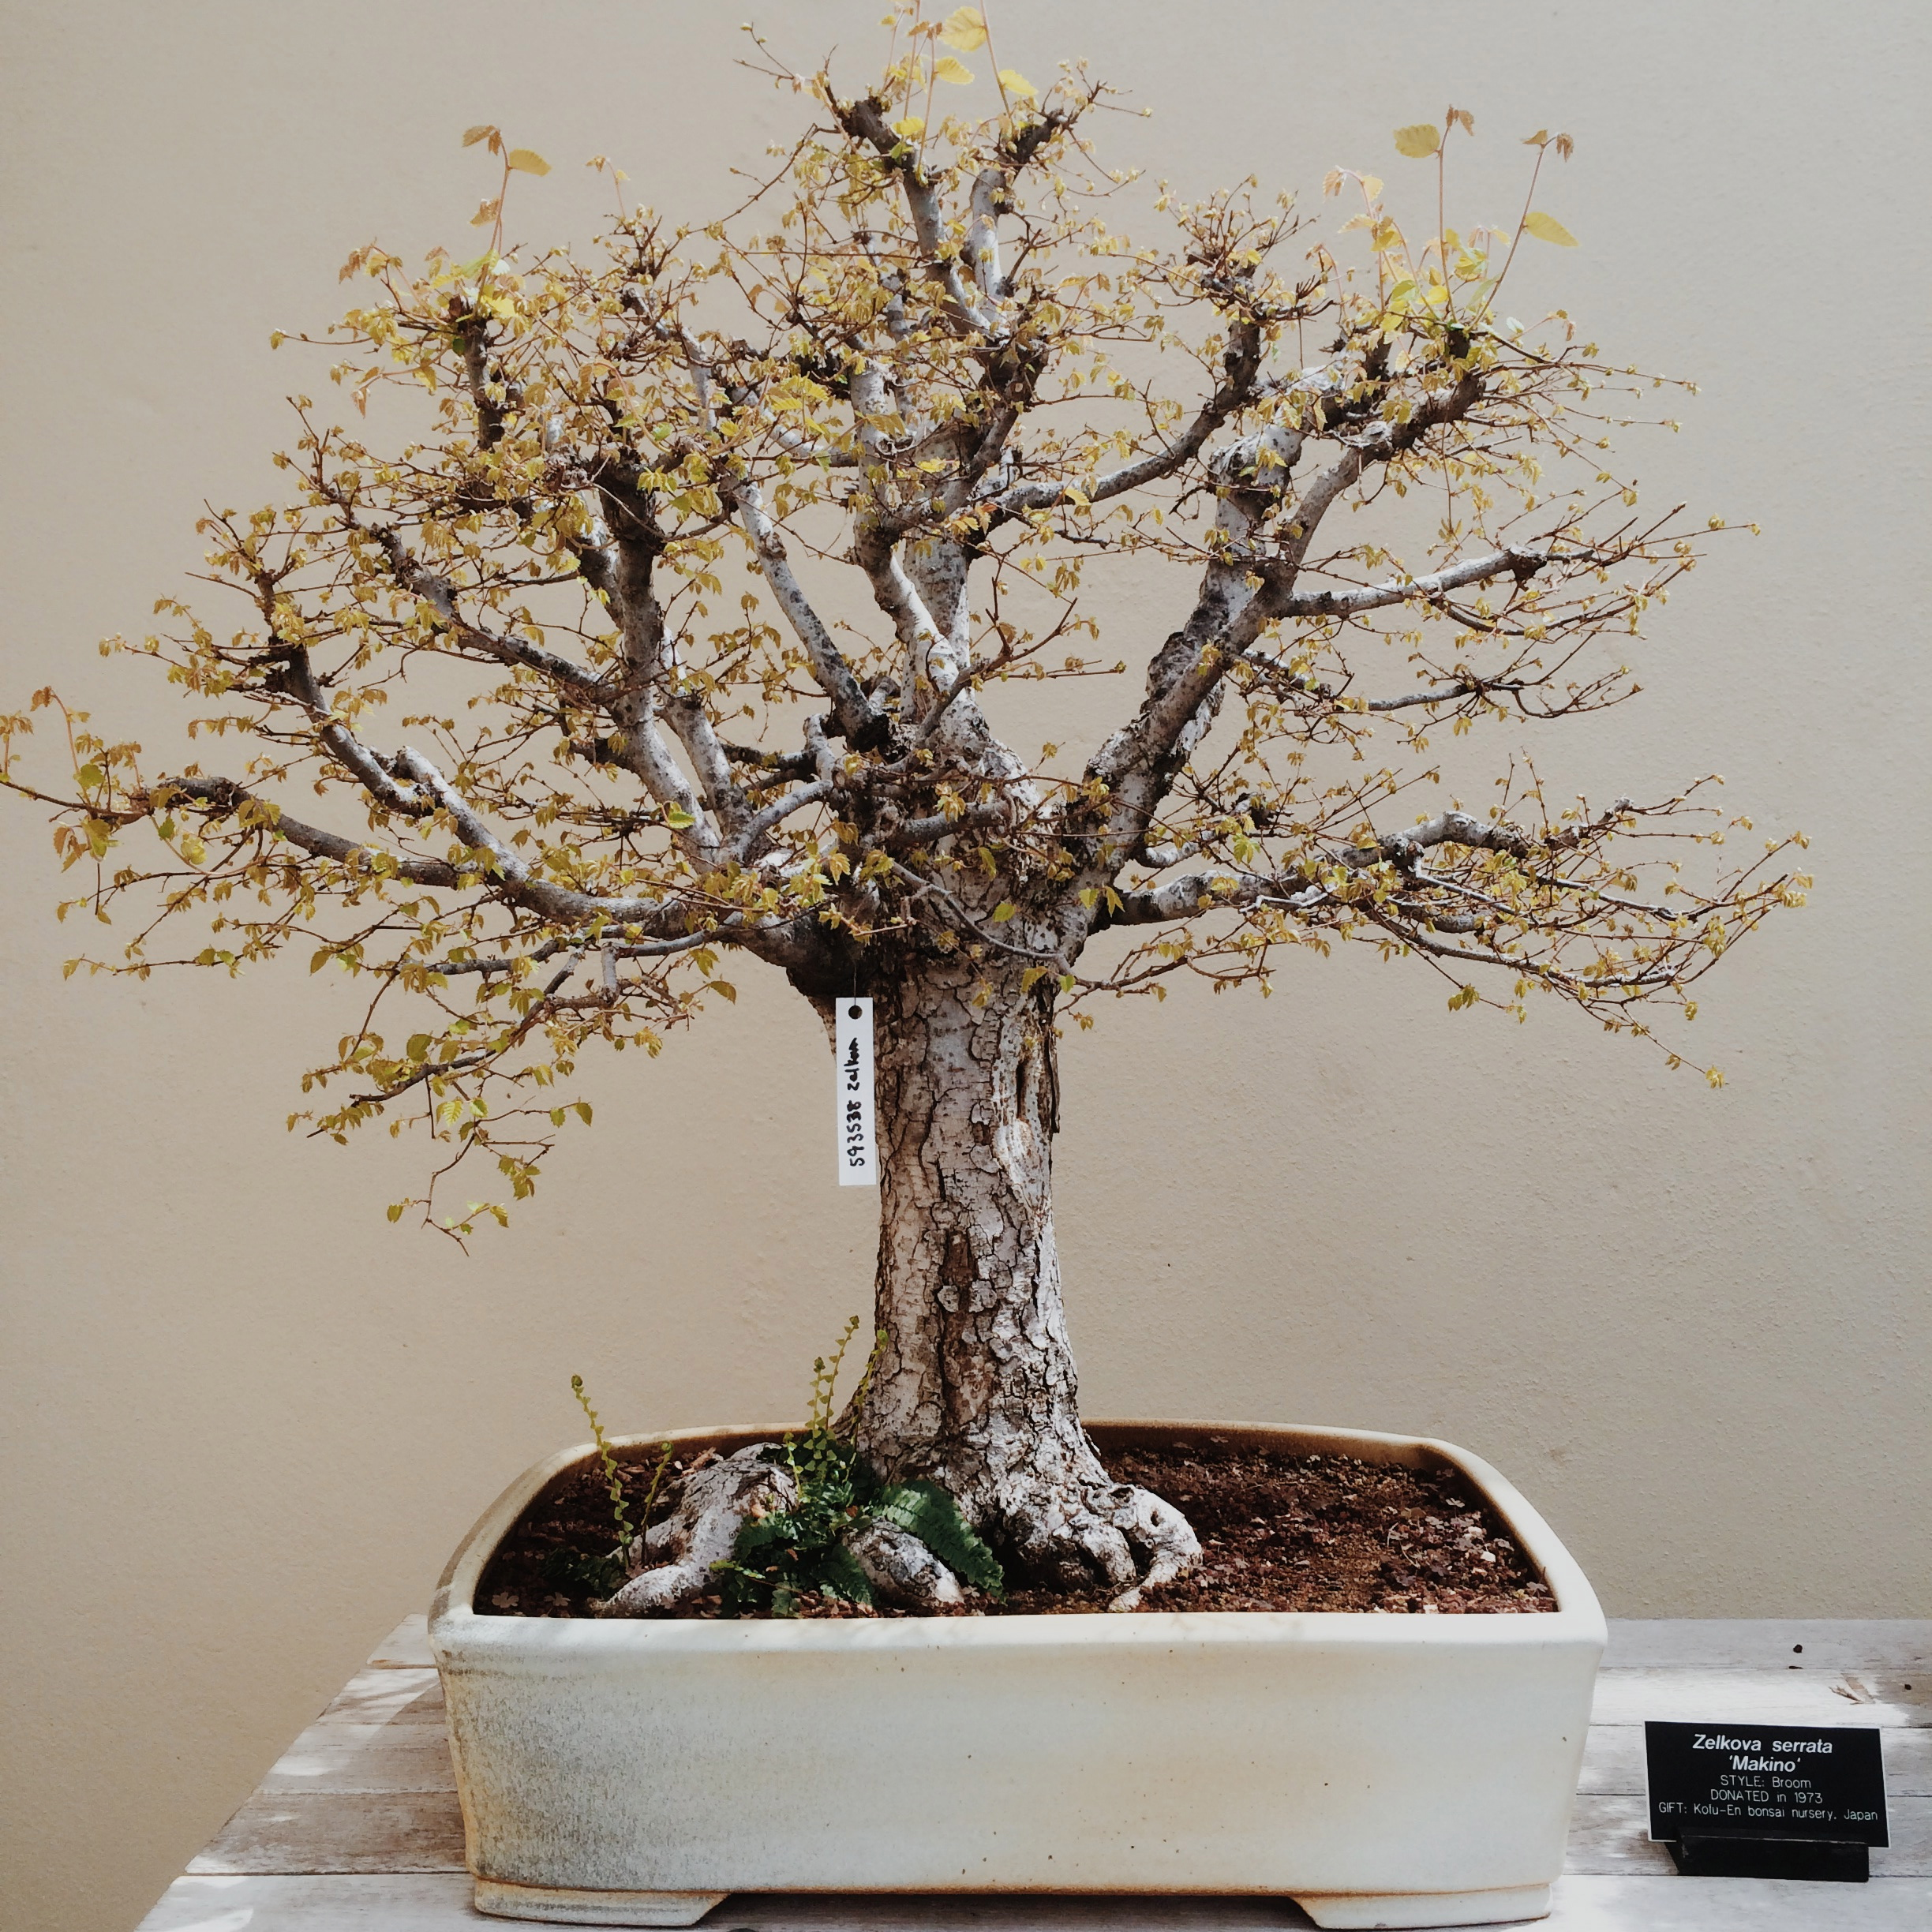 zelkova serrata 'makino'. the scale of this tree is perfect: tiny leaves to go with the tiny trunk and branches. some of the other bonsai have normal-sized leaves on miniature trunks, which is just not as impressive.